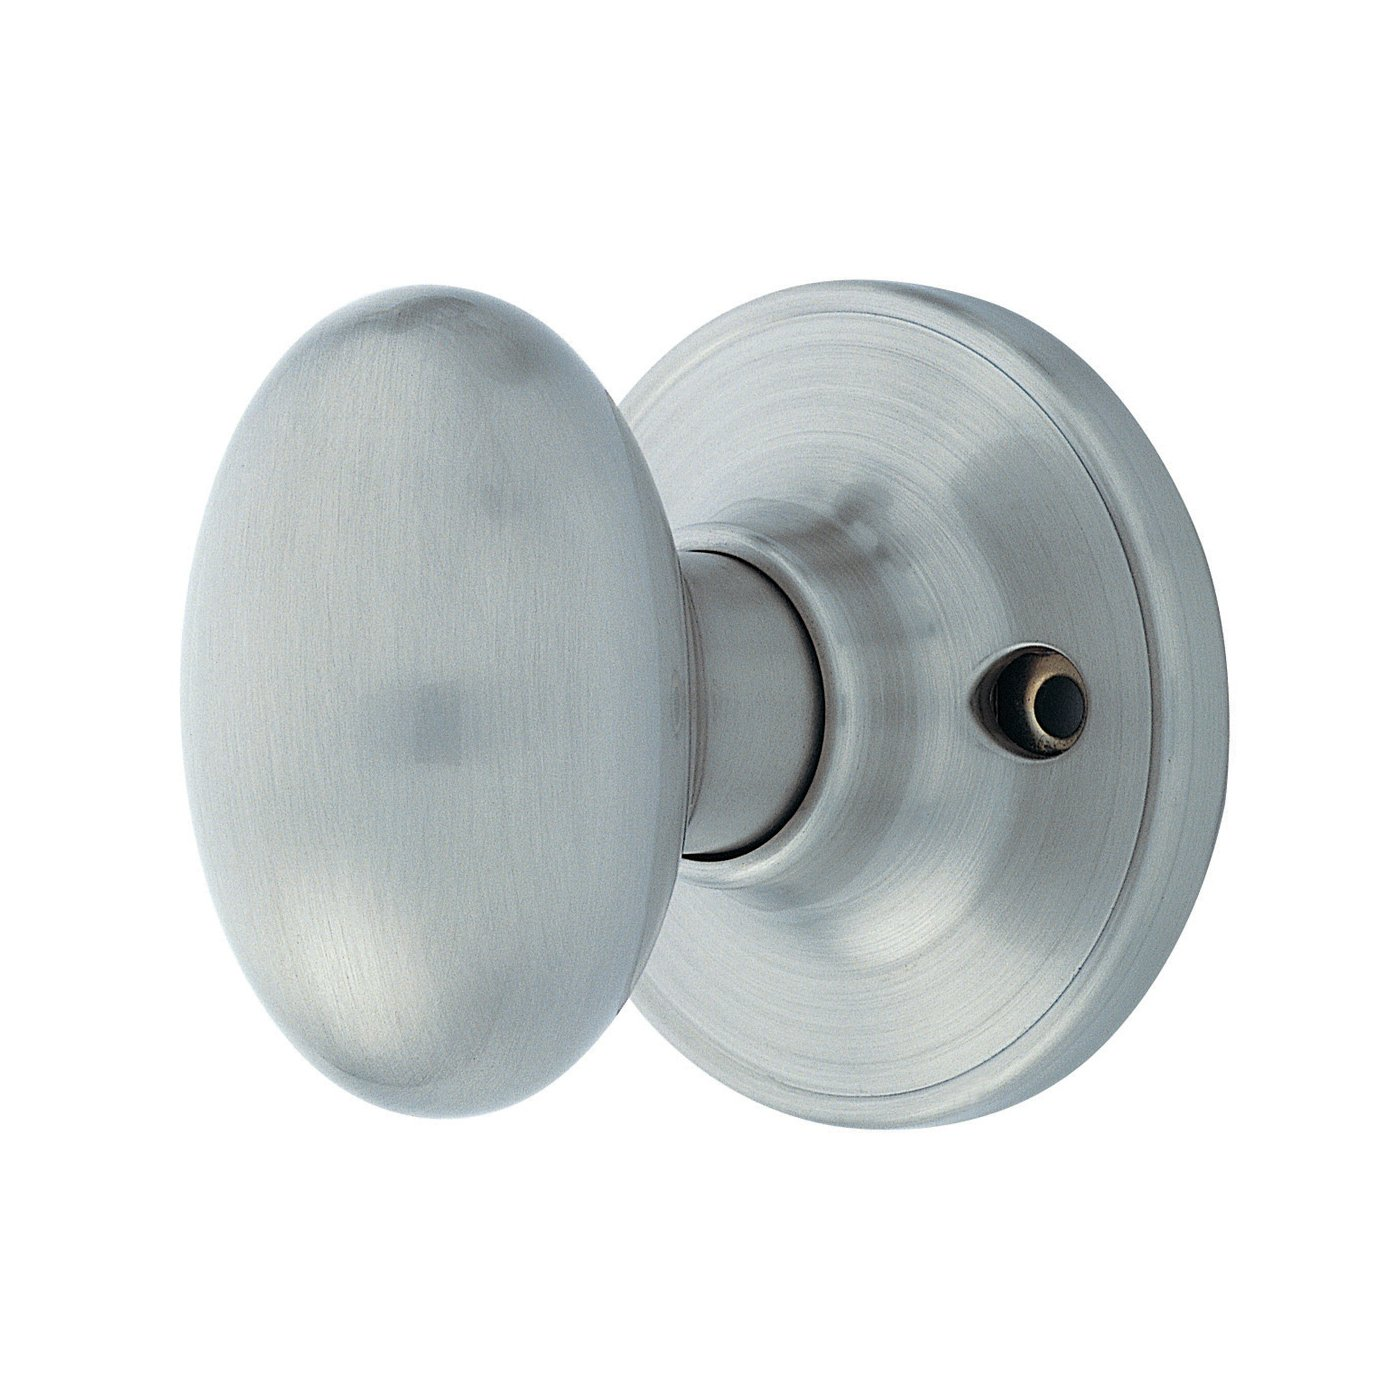 indoor door knobs photo - 3